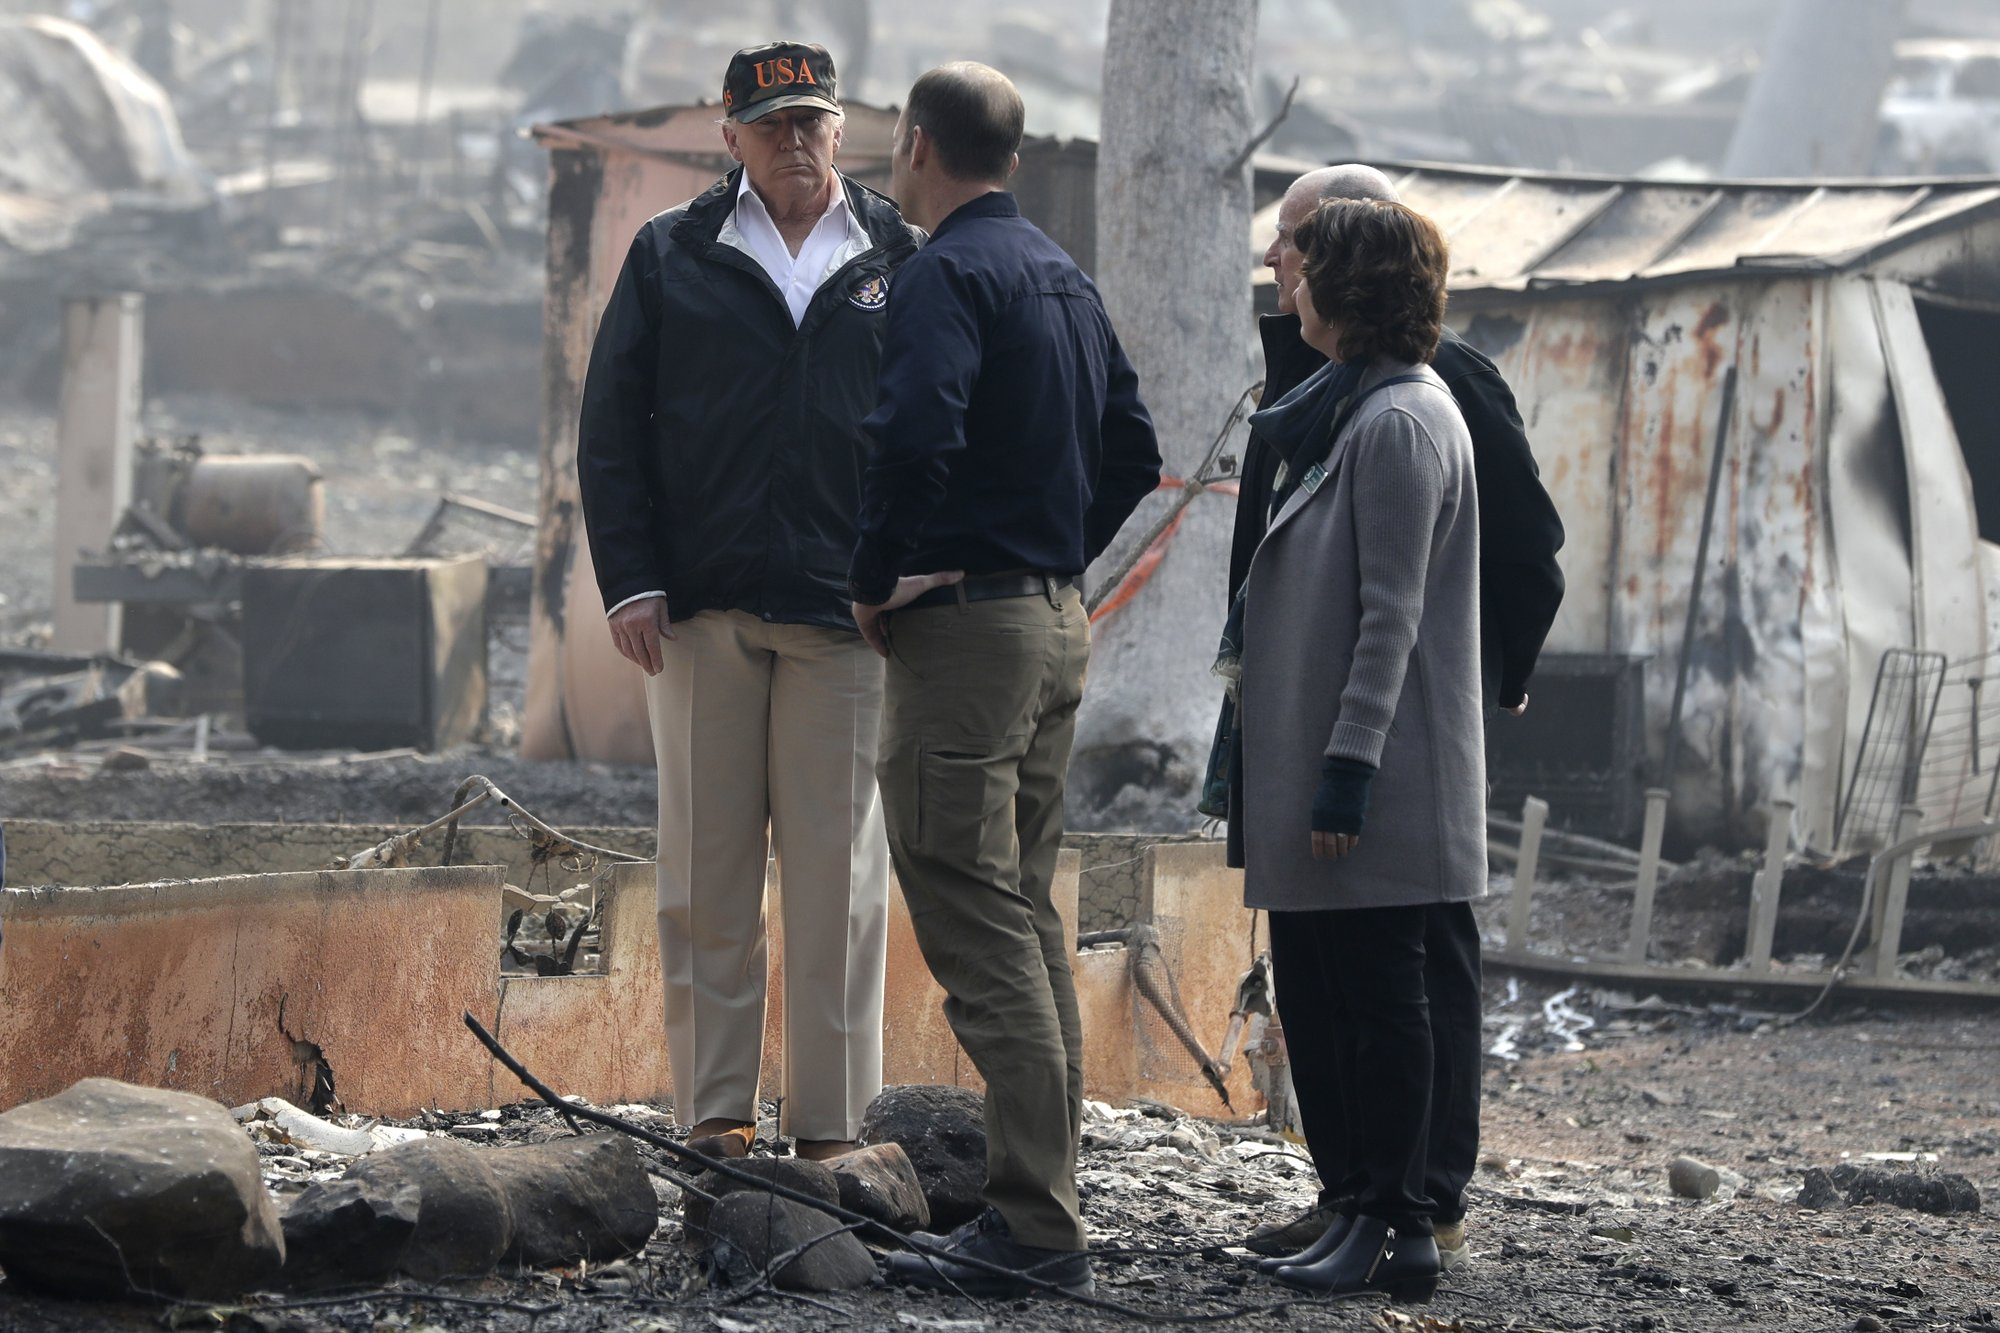 President Donald Trump talks to FEMA Administrator Brock Long as he tours Paradise, Calif., California Gov. Jerry Brown and Paradise Mayor Jody Jones during a visit to a neighborhood impacted by the wildfires, on Saturday, Nov. 17, 2018. Photo: AP